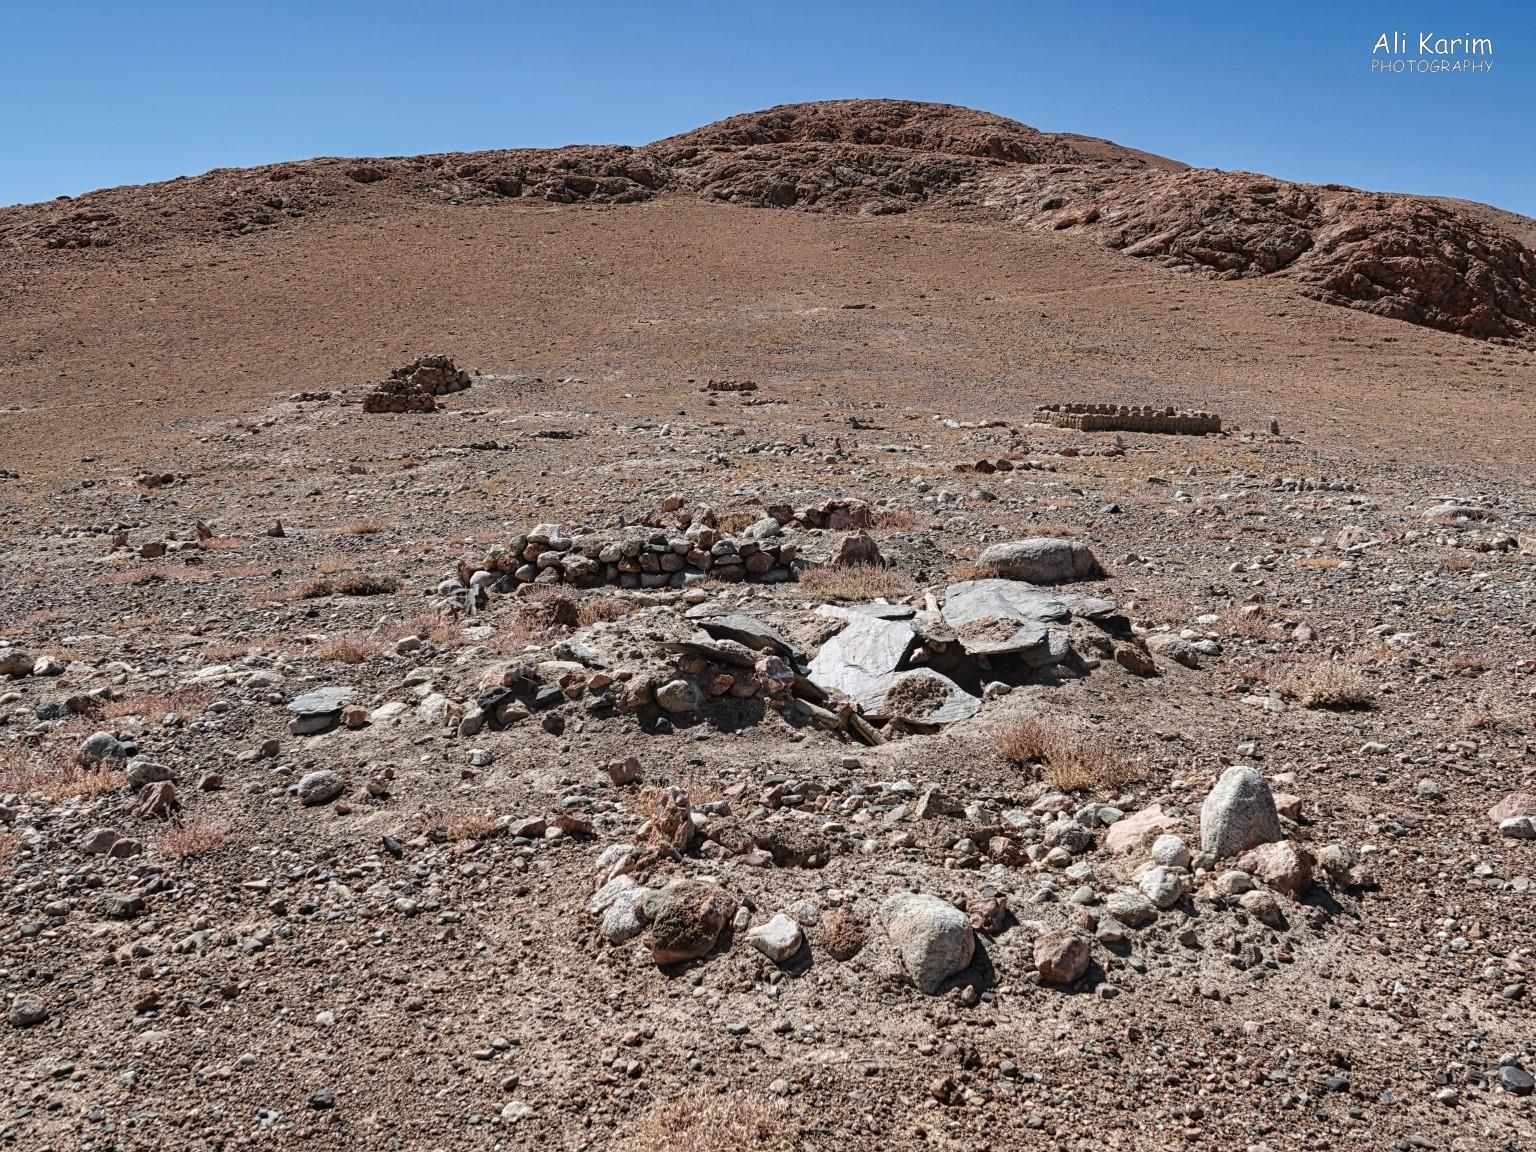 More Murghab & Alichur, Tajikistan, People do die here, & even if it is sparsely populated; this is a need for a kabrastan or graveyard